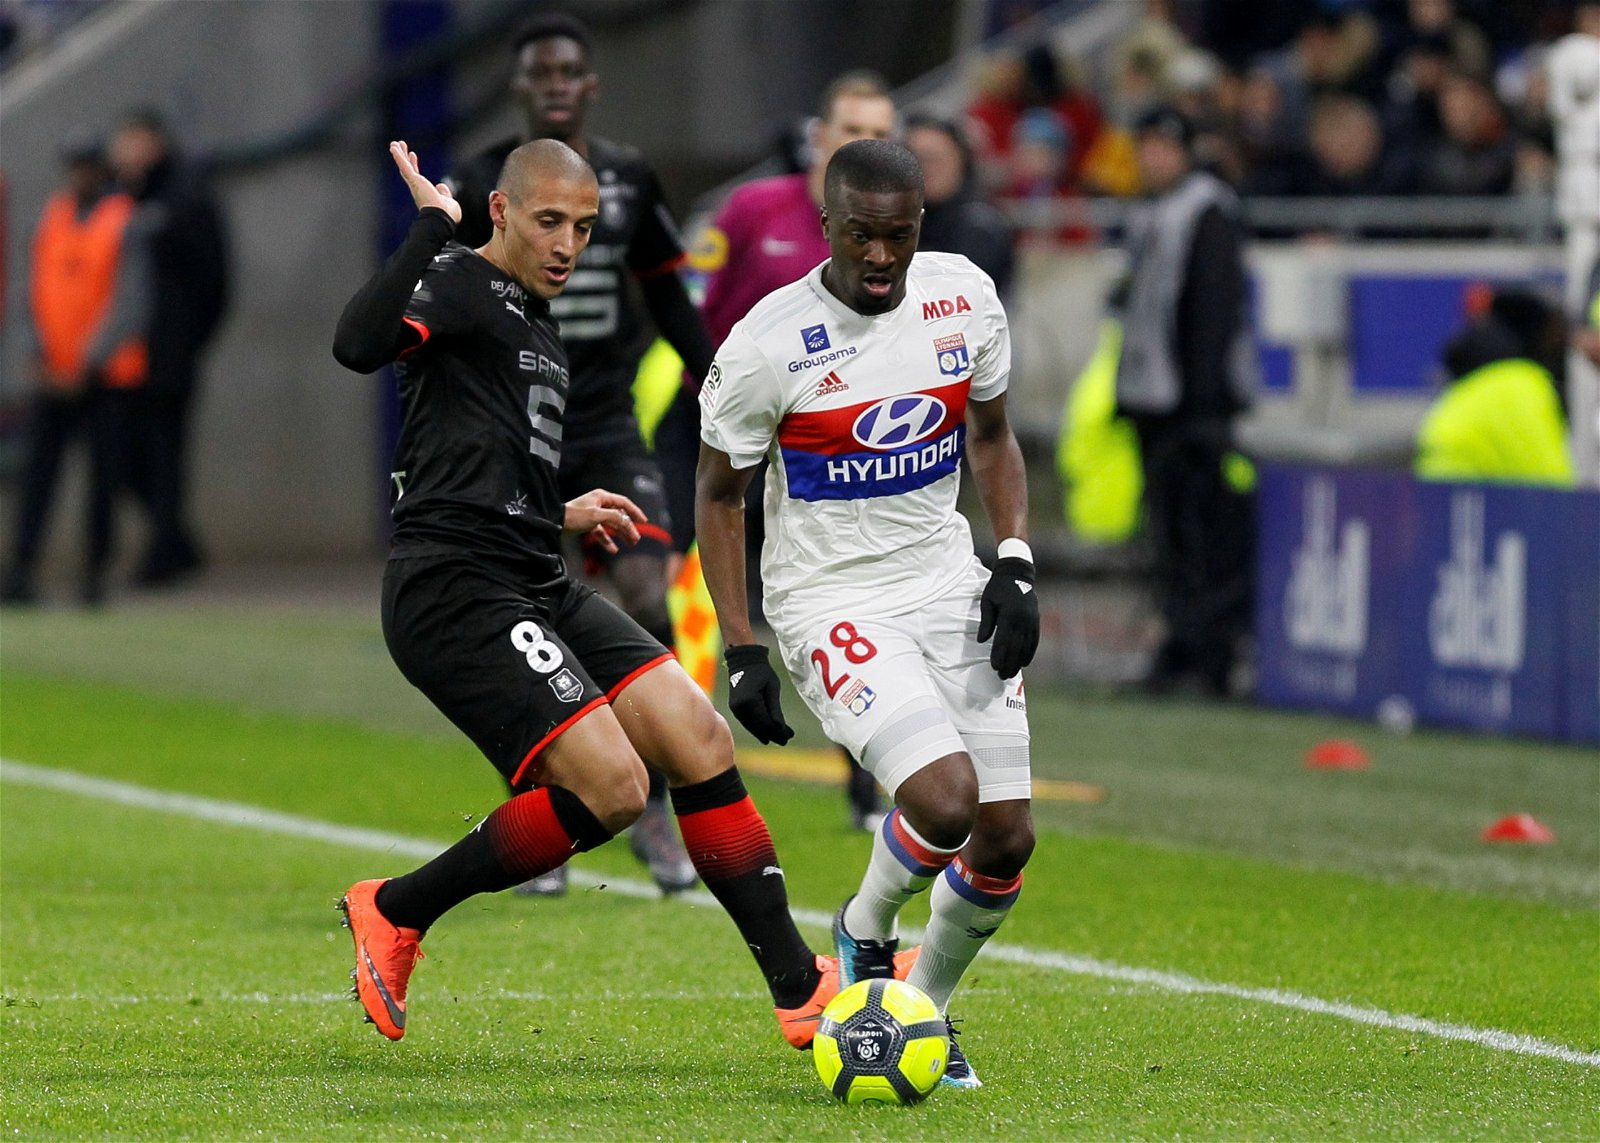 Tanguy Ndombele in action for Lyon against Rennes